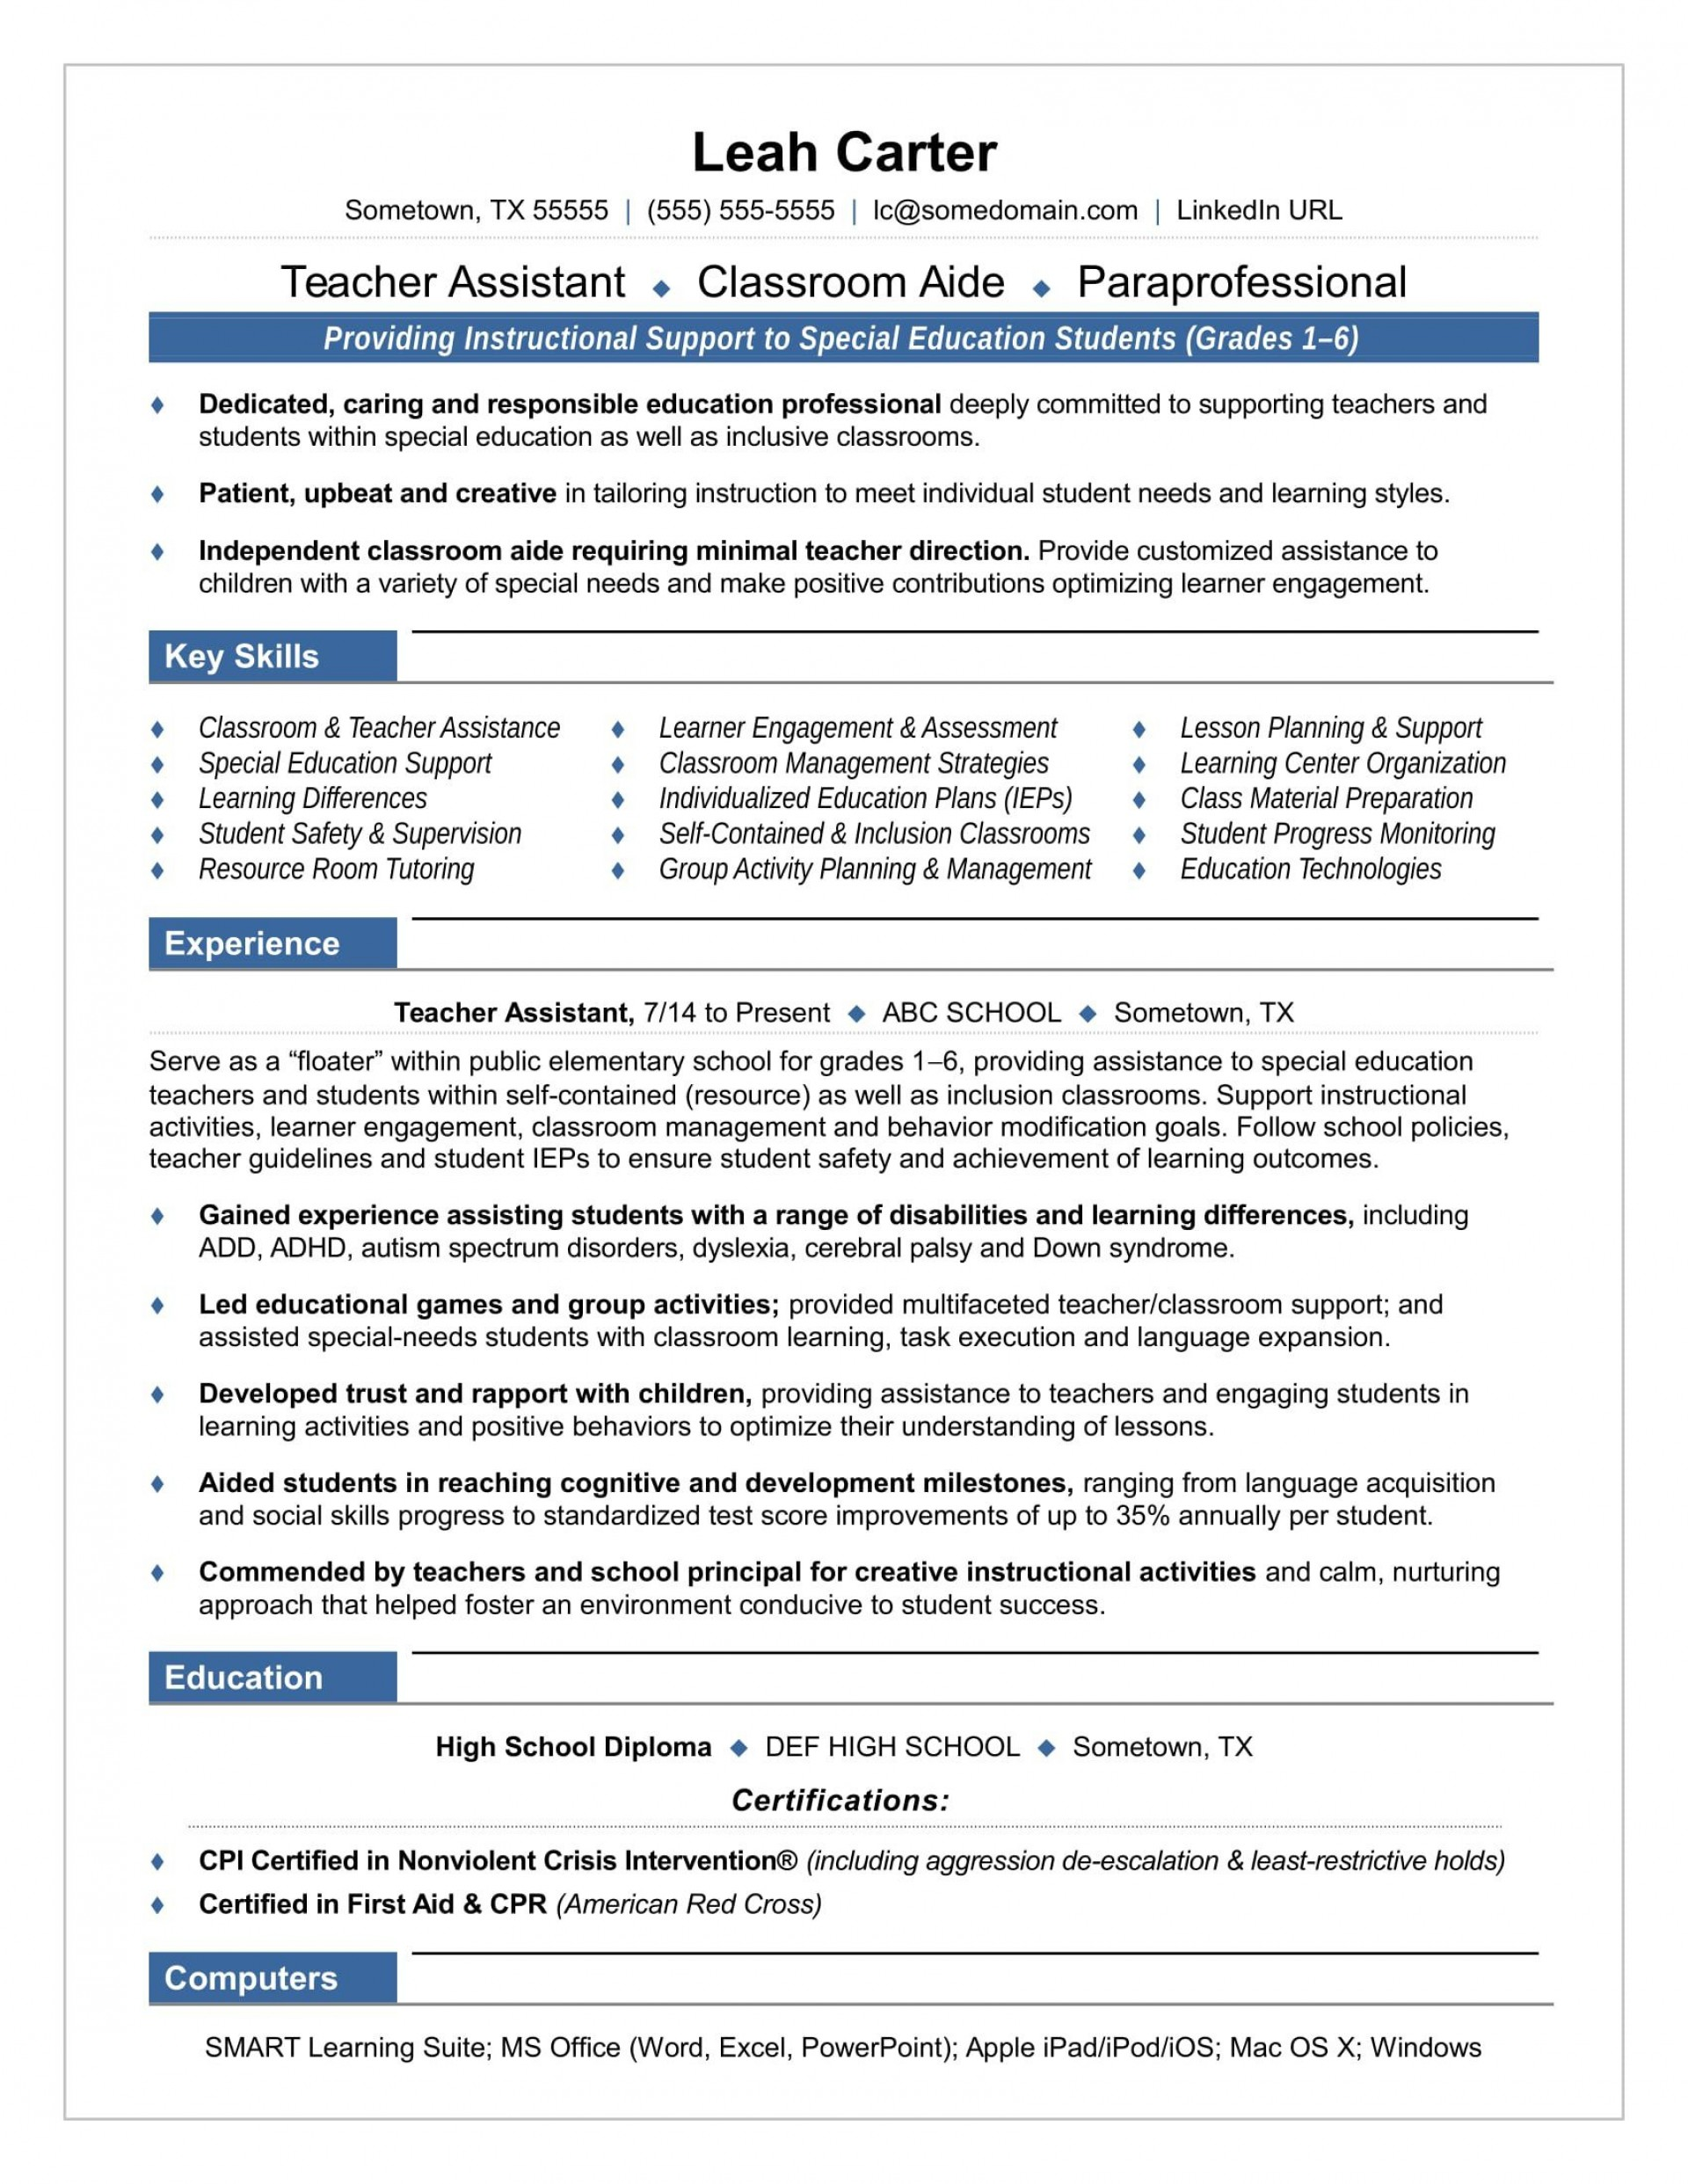 008 Fantastic Resume Example For Teaching Job High Definition  Jobs Format Sample Curriculum Vitae Profession In India1920